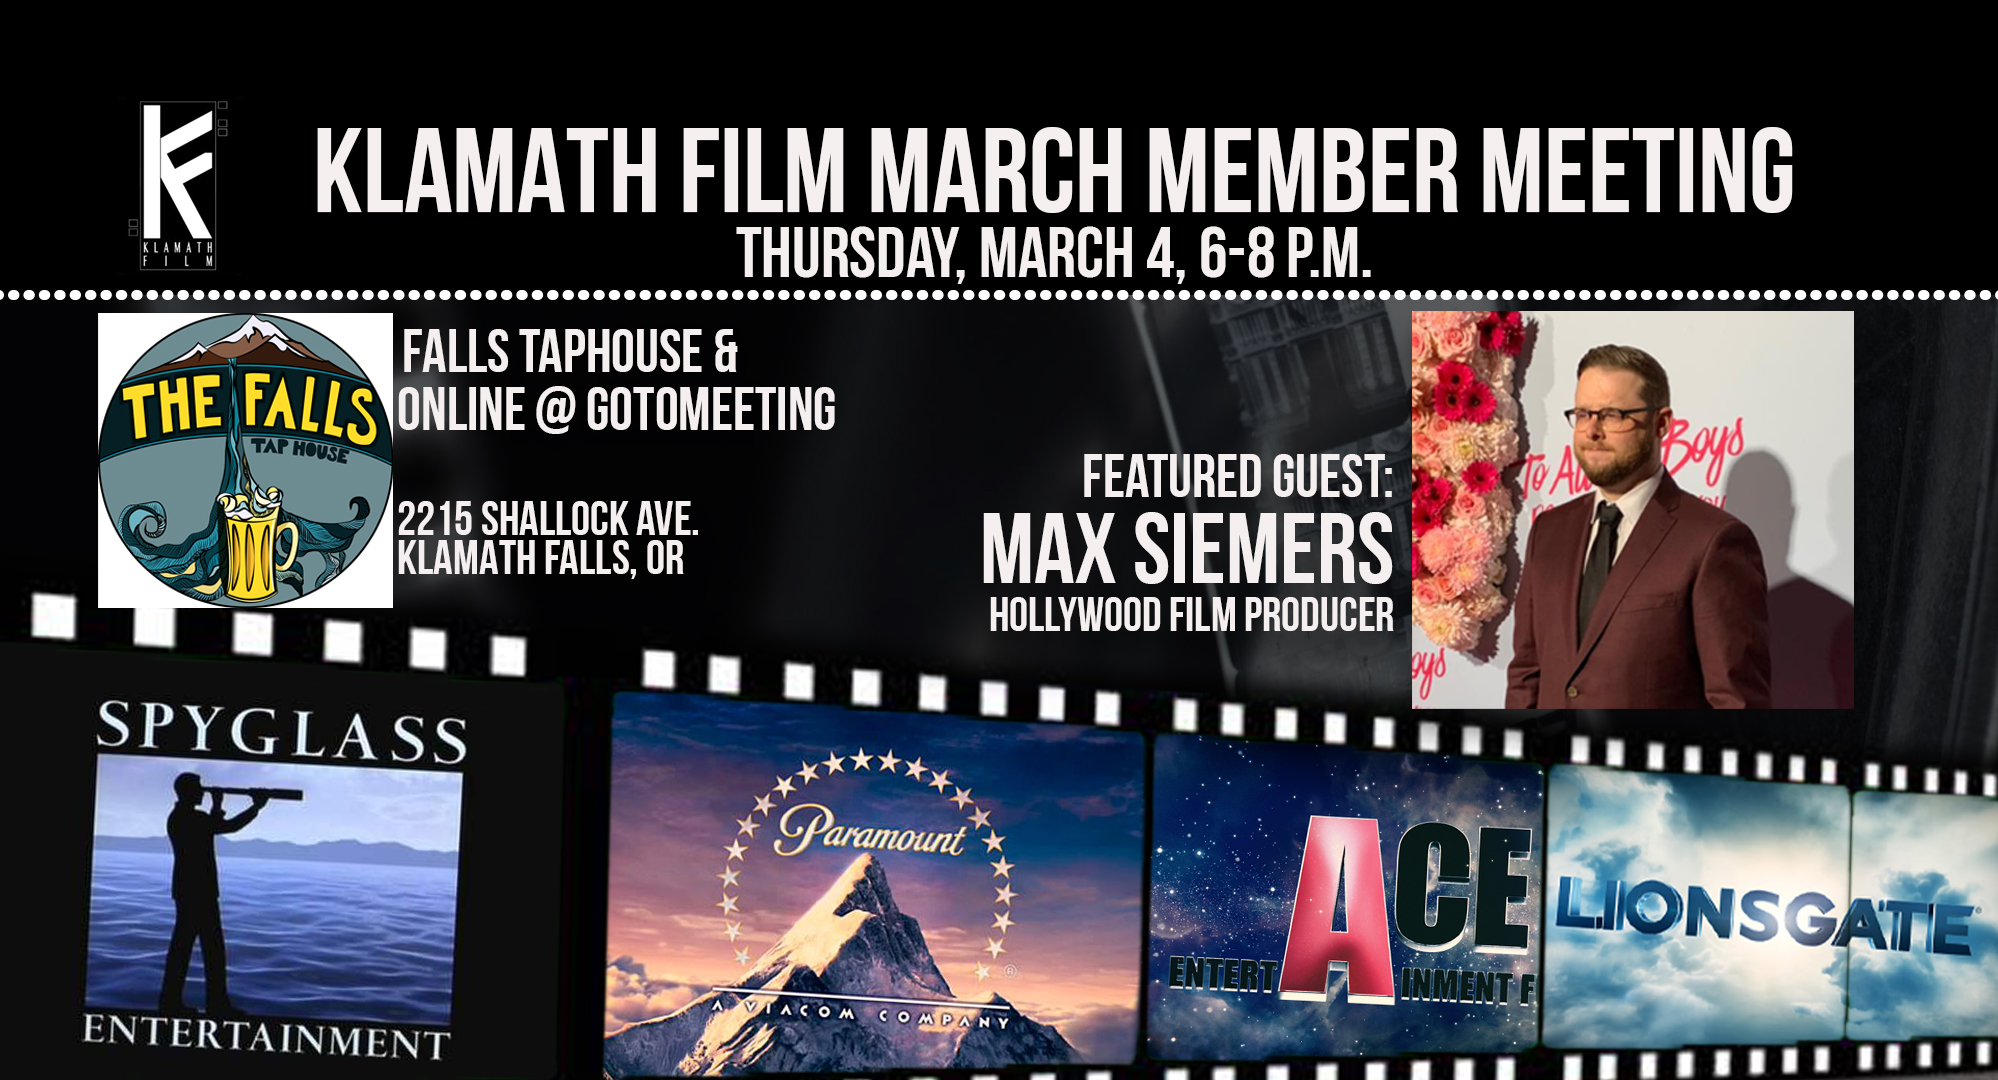 March member meeting at the Falls Taphouse Thursday